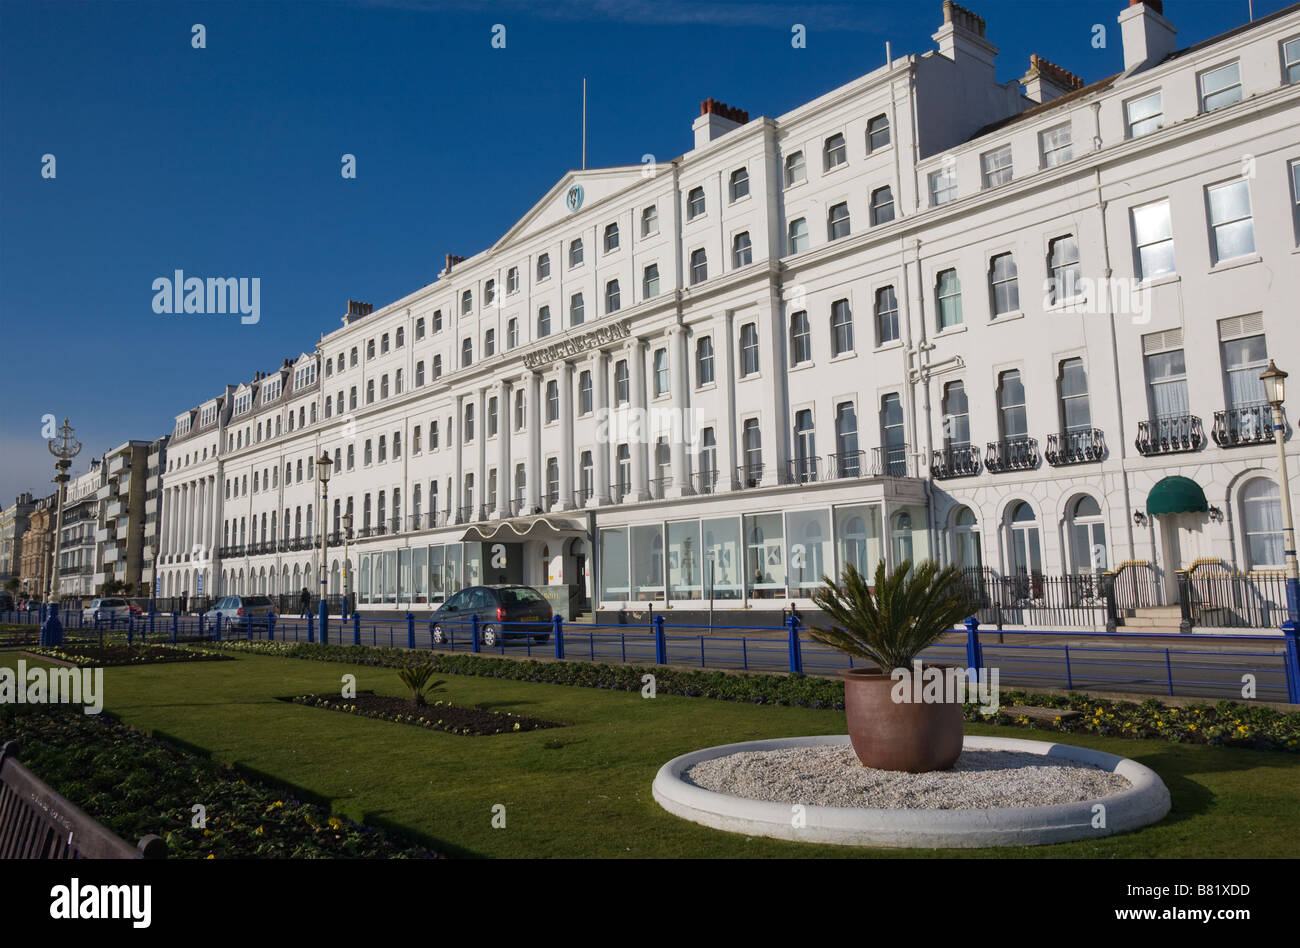 The Burlington Hotel Grand Parade and seafront gardens in